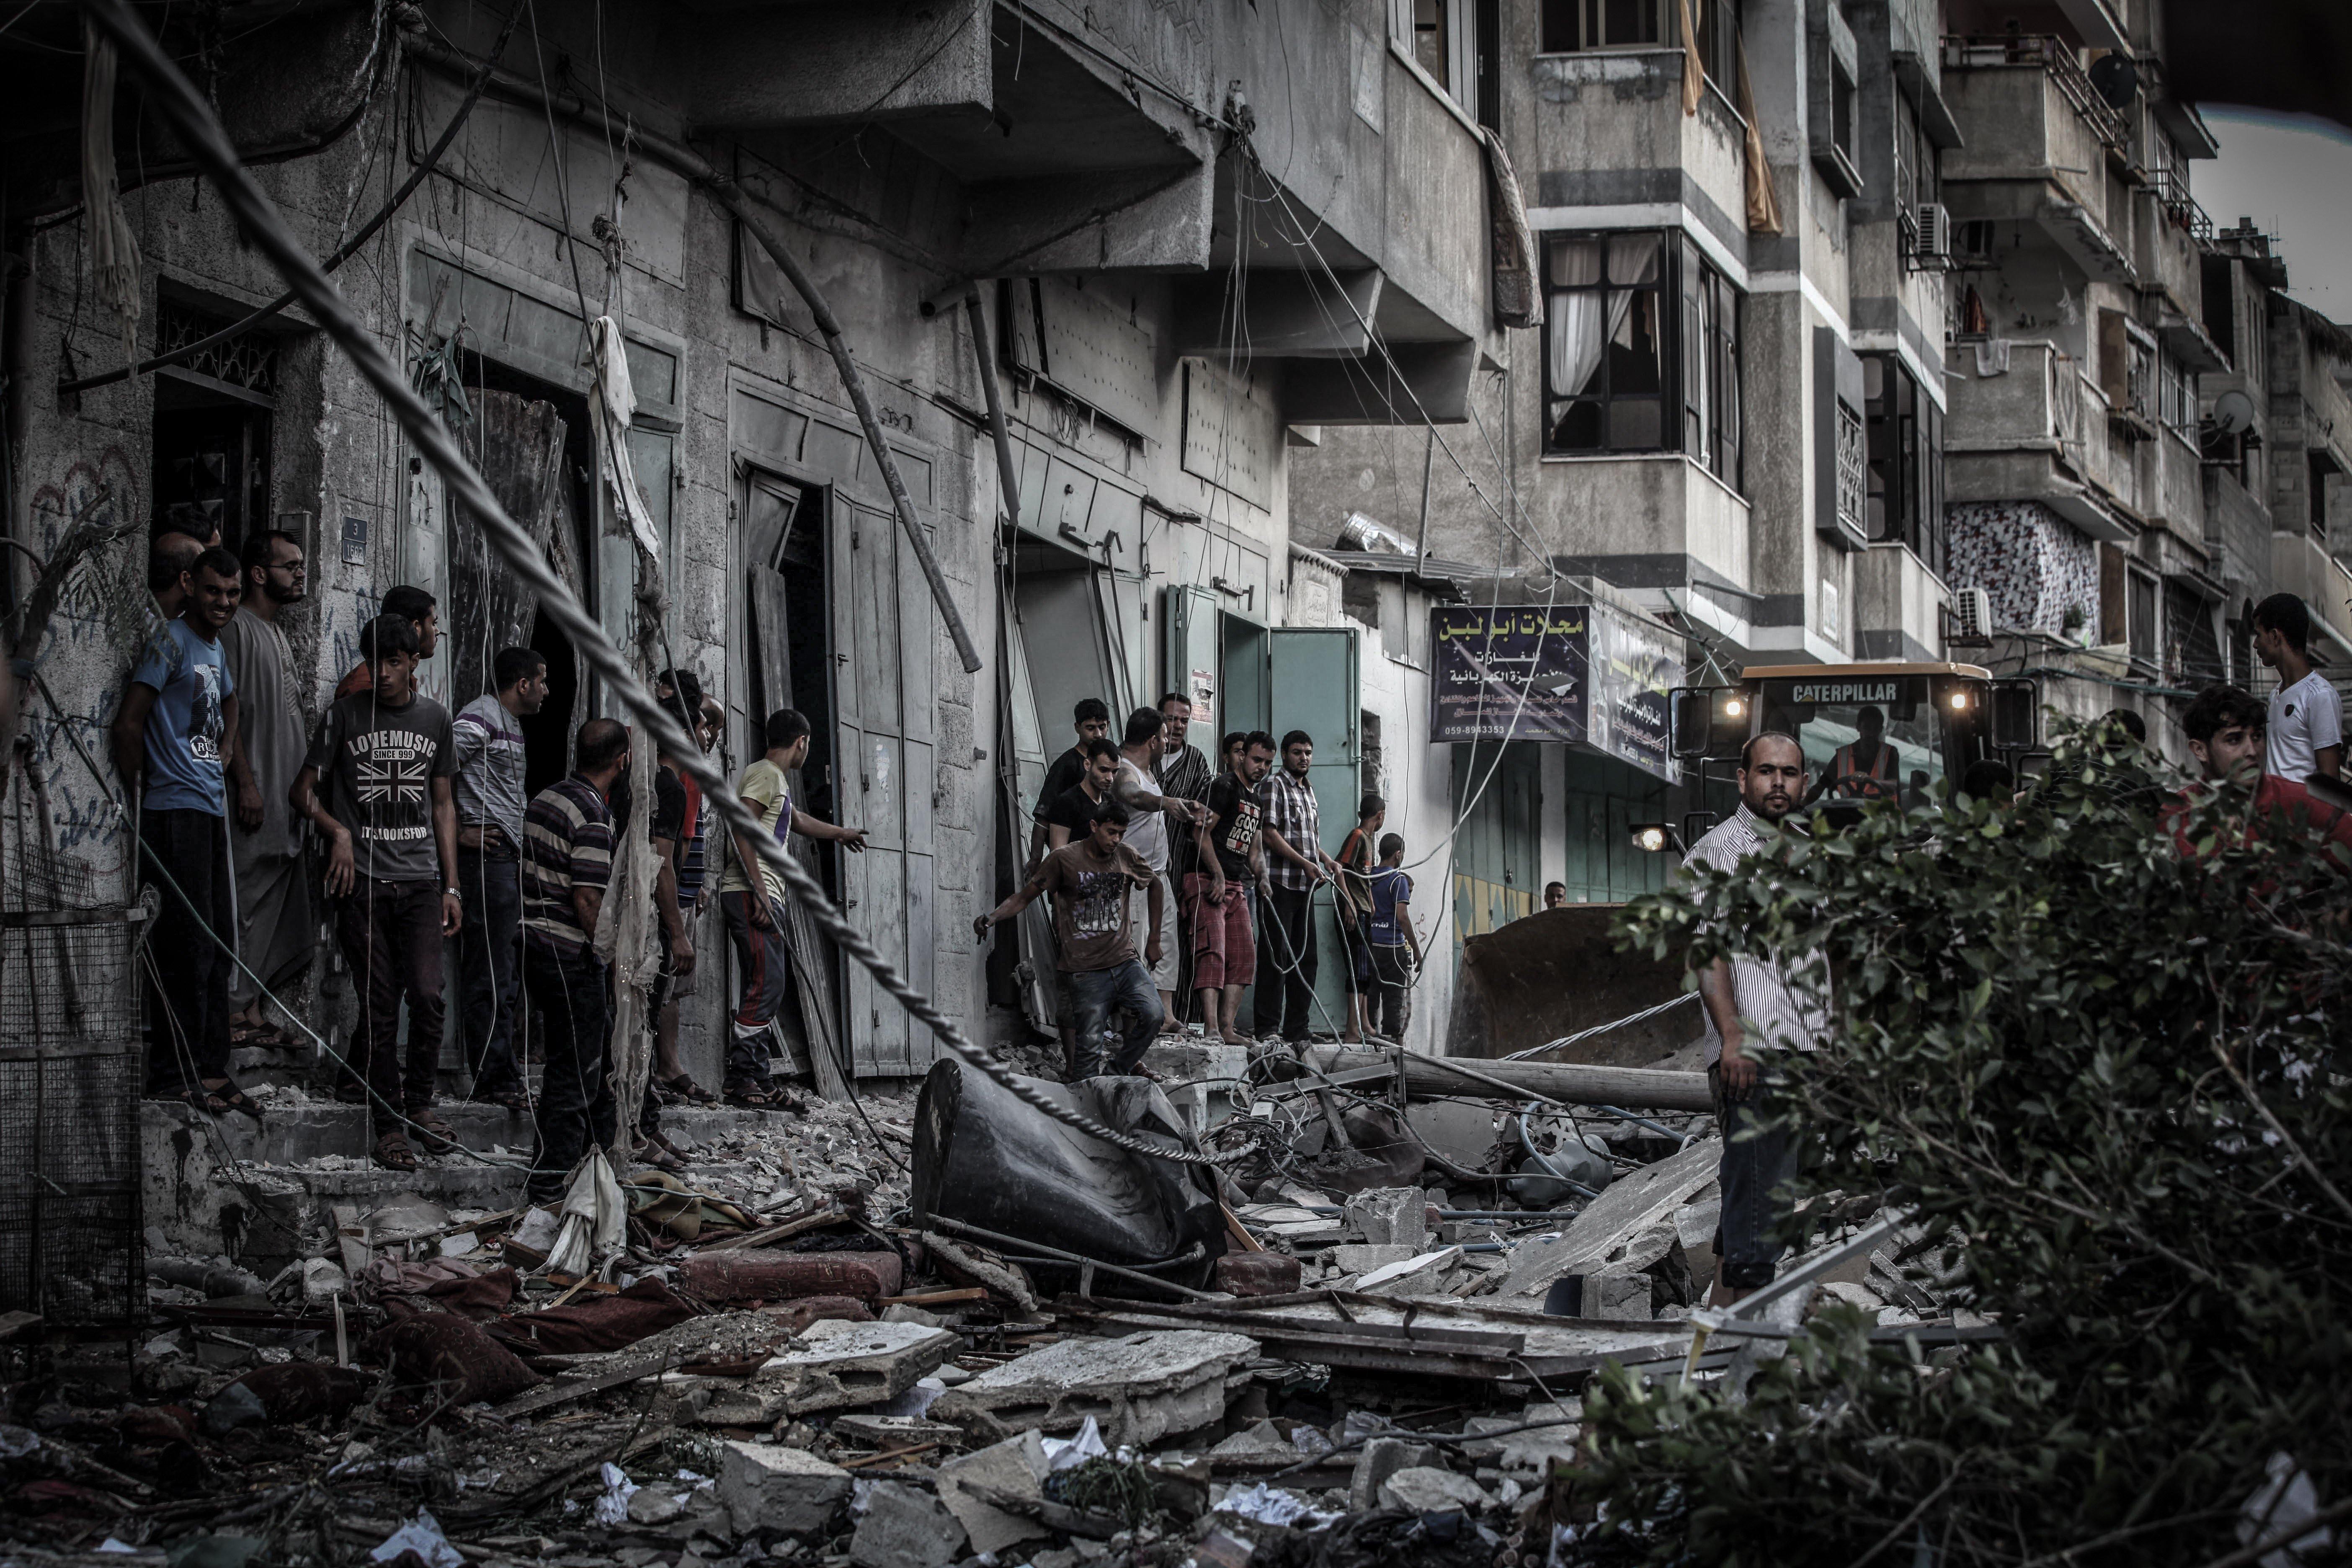 Palestinians inspect damage of an apartment building after it was hit by an Israeli missile strike in Gaza City, Friday, July 18, 2014.